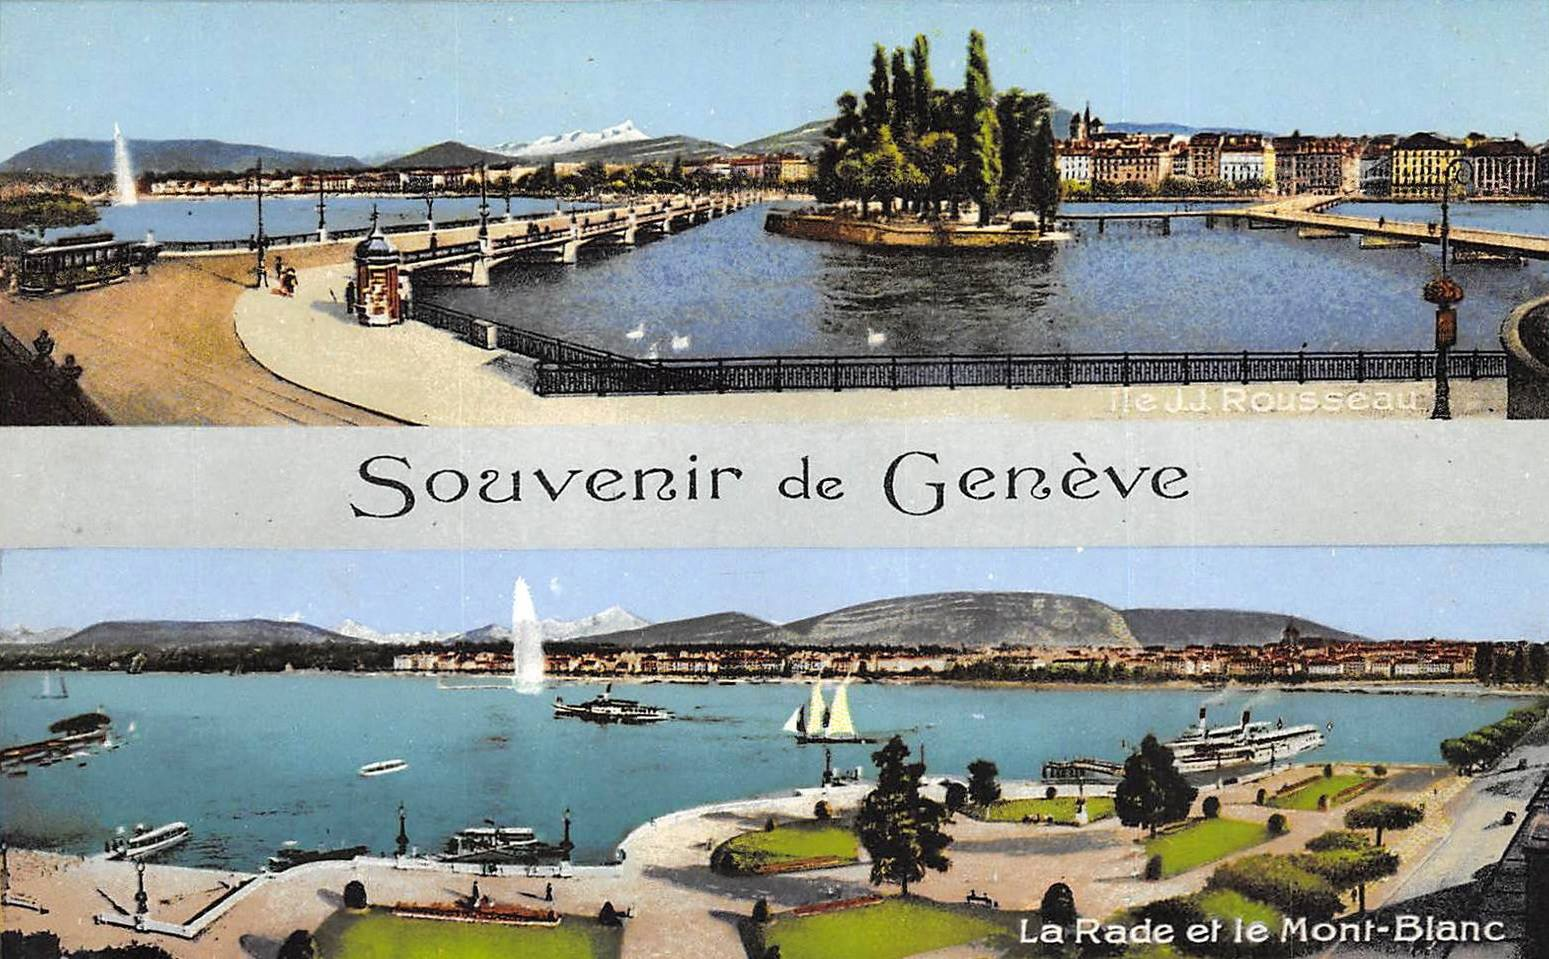 Vintage postcard of Geneva, Souvenir de Genève, with at the top a view of the Mont Blanc bridge and Ile de Rousseau and at the bottom a view of Lac Léman, the Jet d'Eau and the Salève.